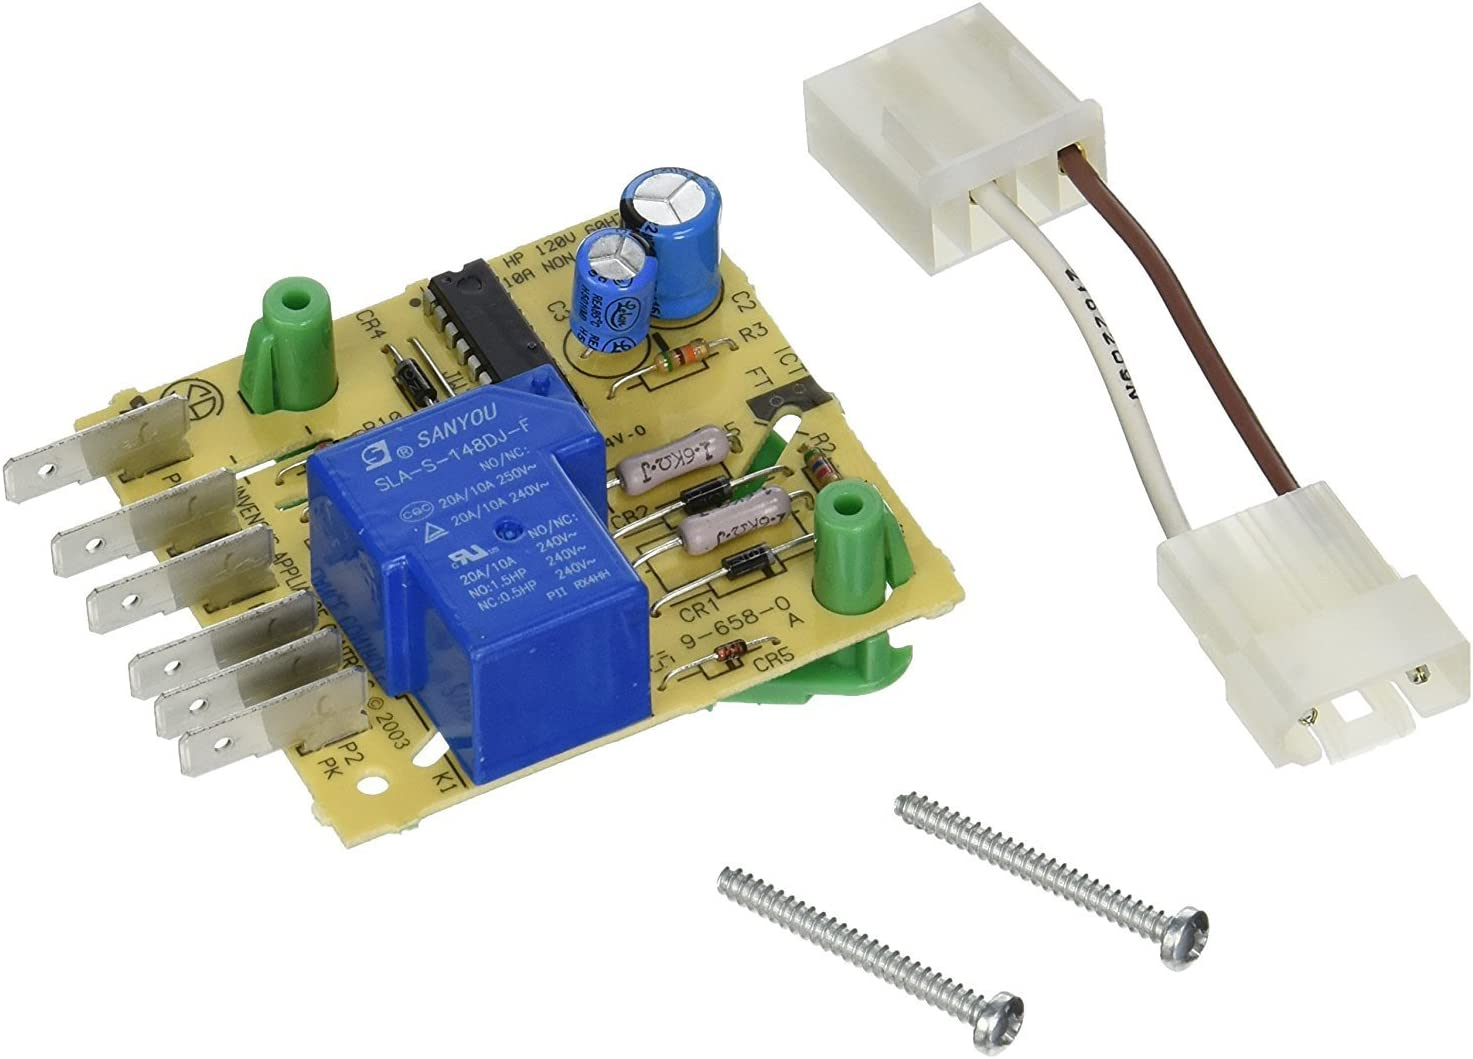 Edgewater Parts AP3109394, PS372261 Defrost Control Board Compatible With Whirlpool Refrigerator